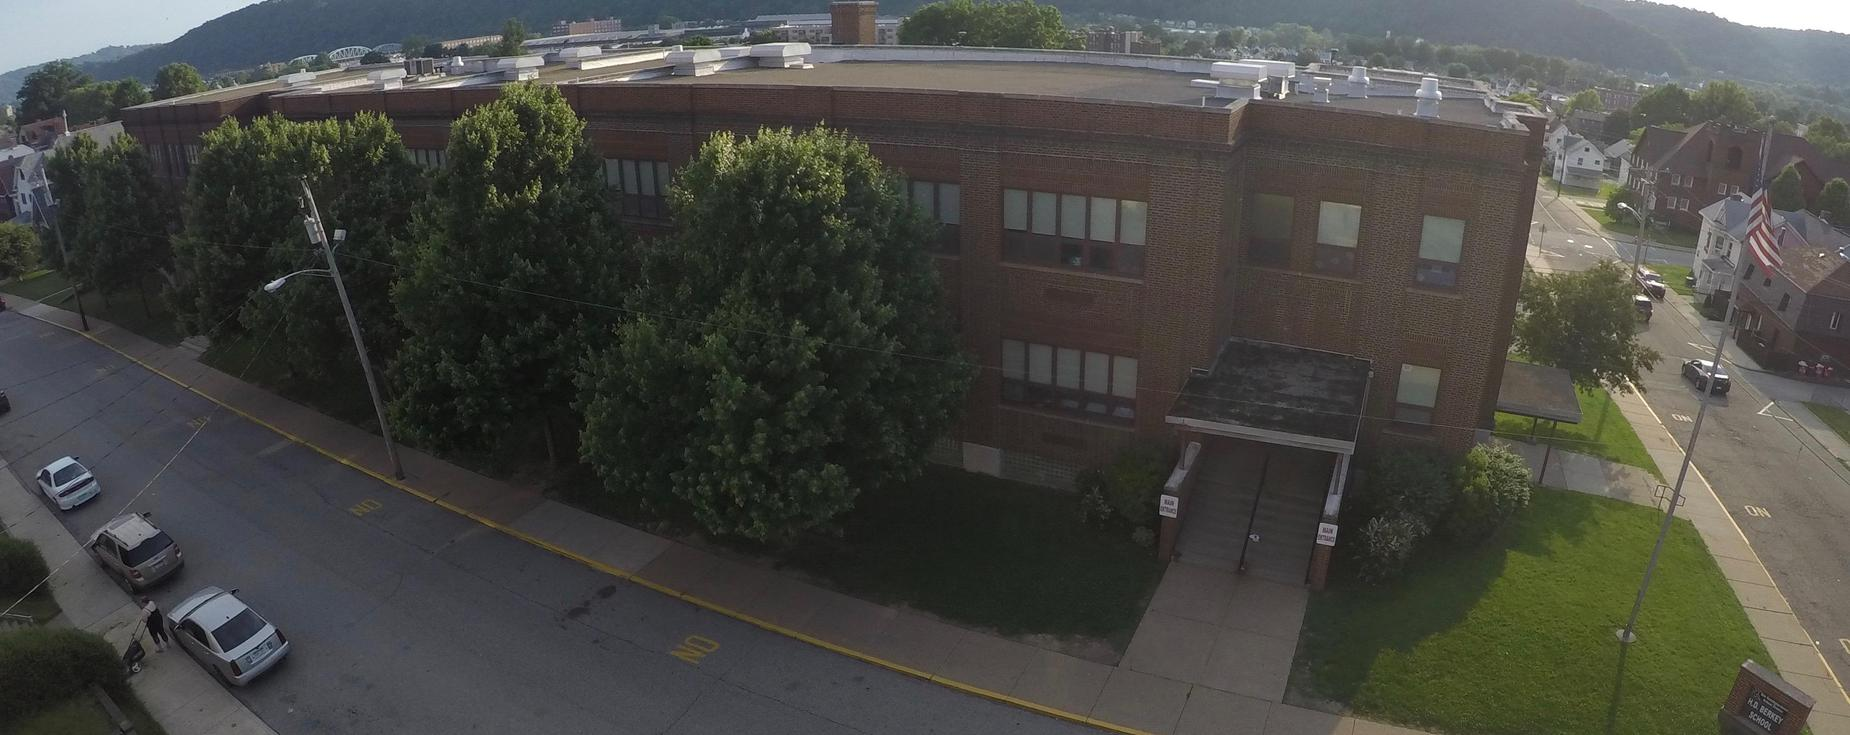 Aerial view of H. D. Berkey School, New Kensington Arnold School District.